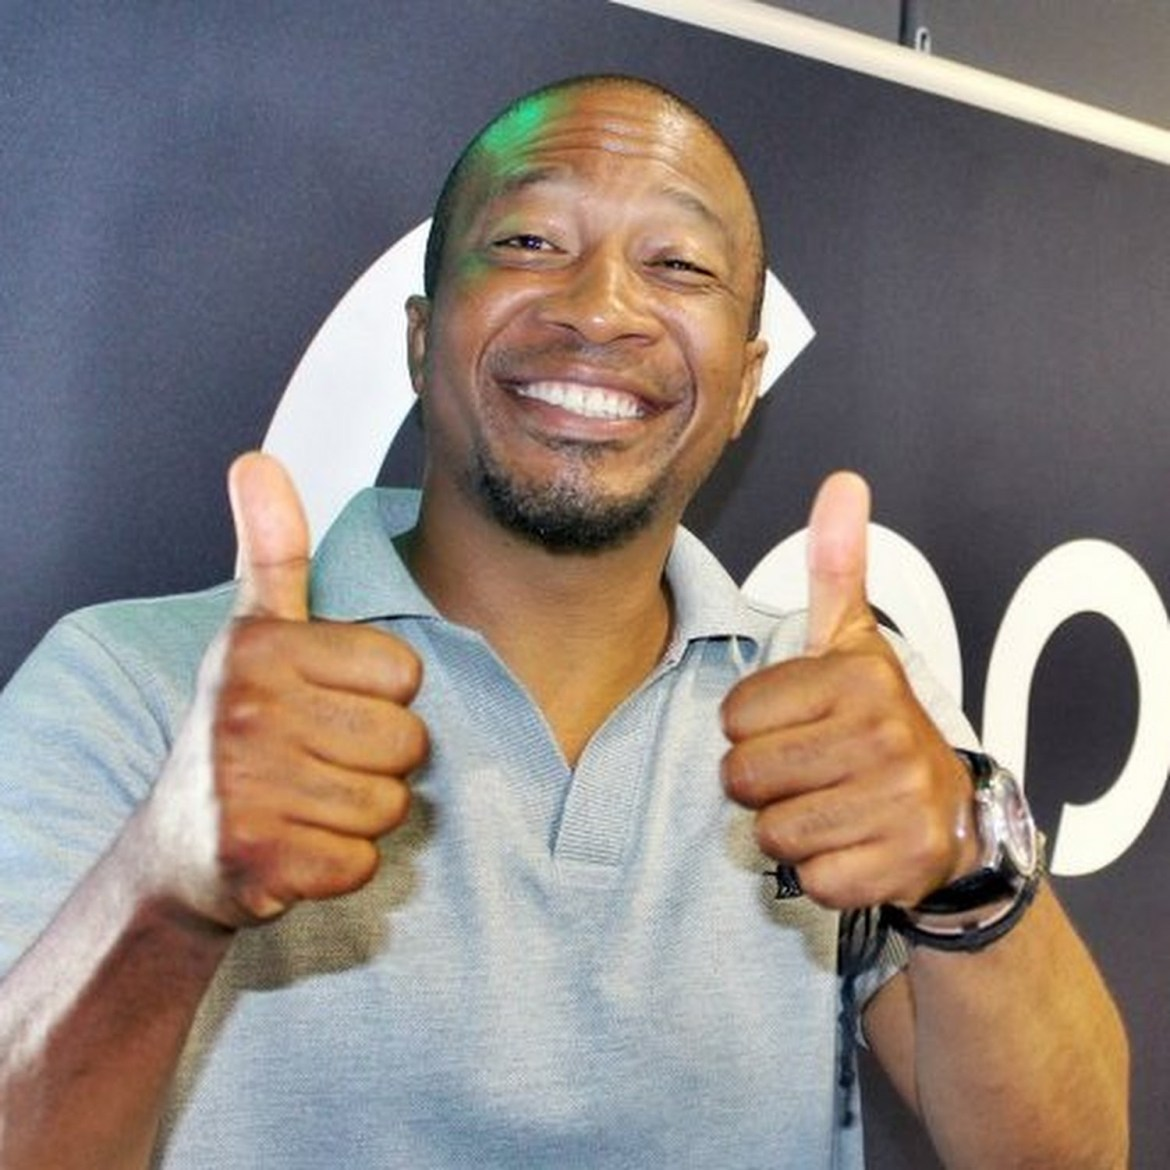 Skeem Saam's Meneer Manaka Now Wants To Focus Fully On His Role On Show Not Radio Presenting